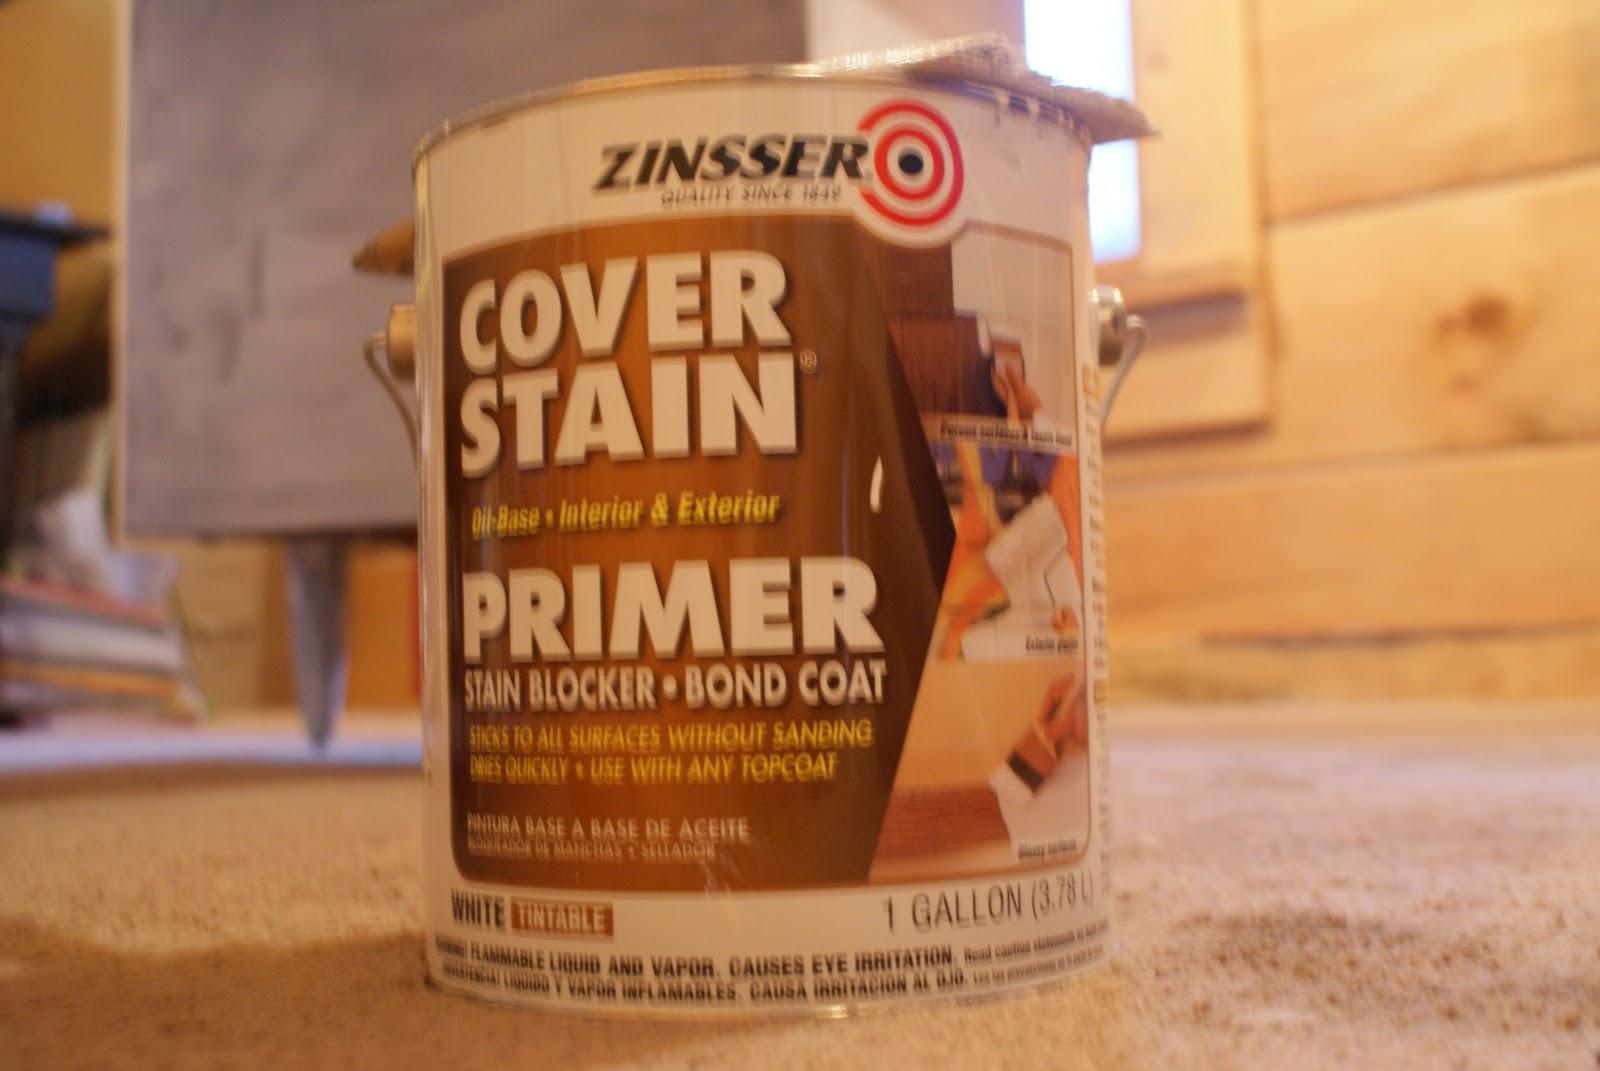 Can i stain over stain - You Can T Paint Over Stain It Make It Look Funny So I Bought A Primer That Covers Stain So I Could Repaint Them Hopefully I Will Be Back With A Crate Post